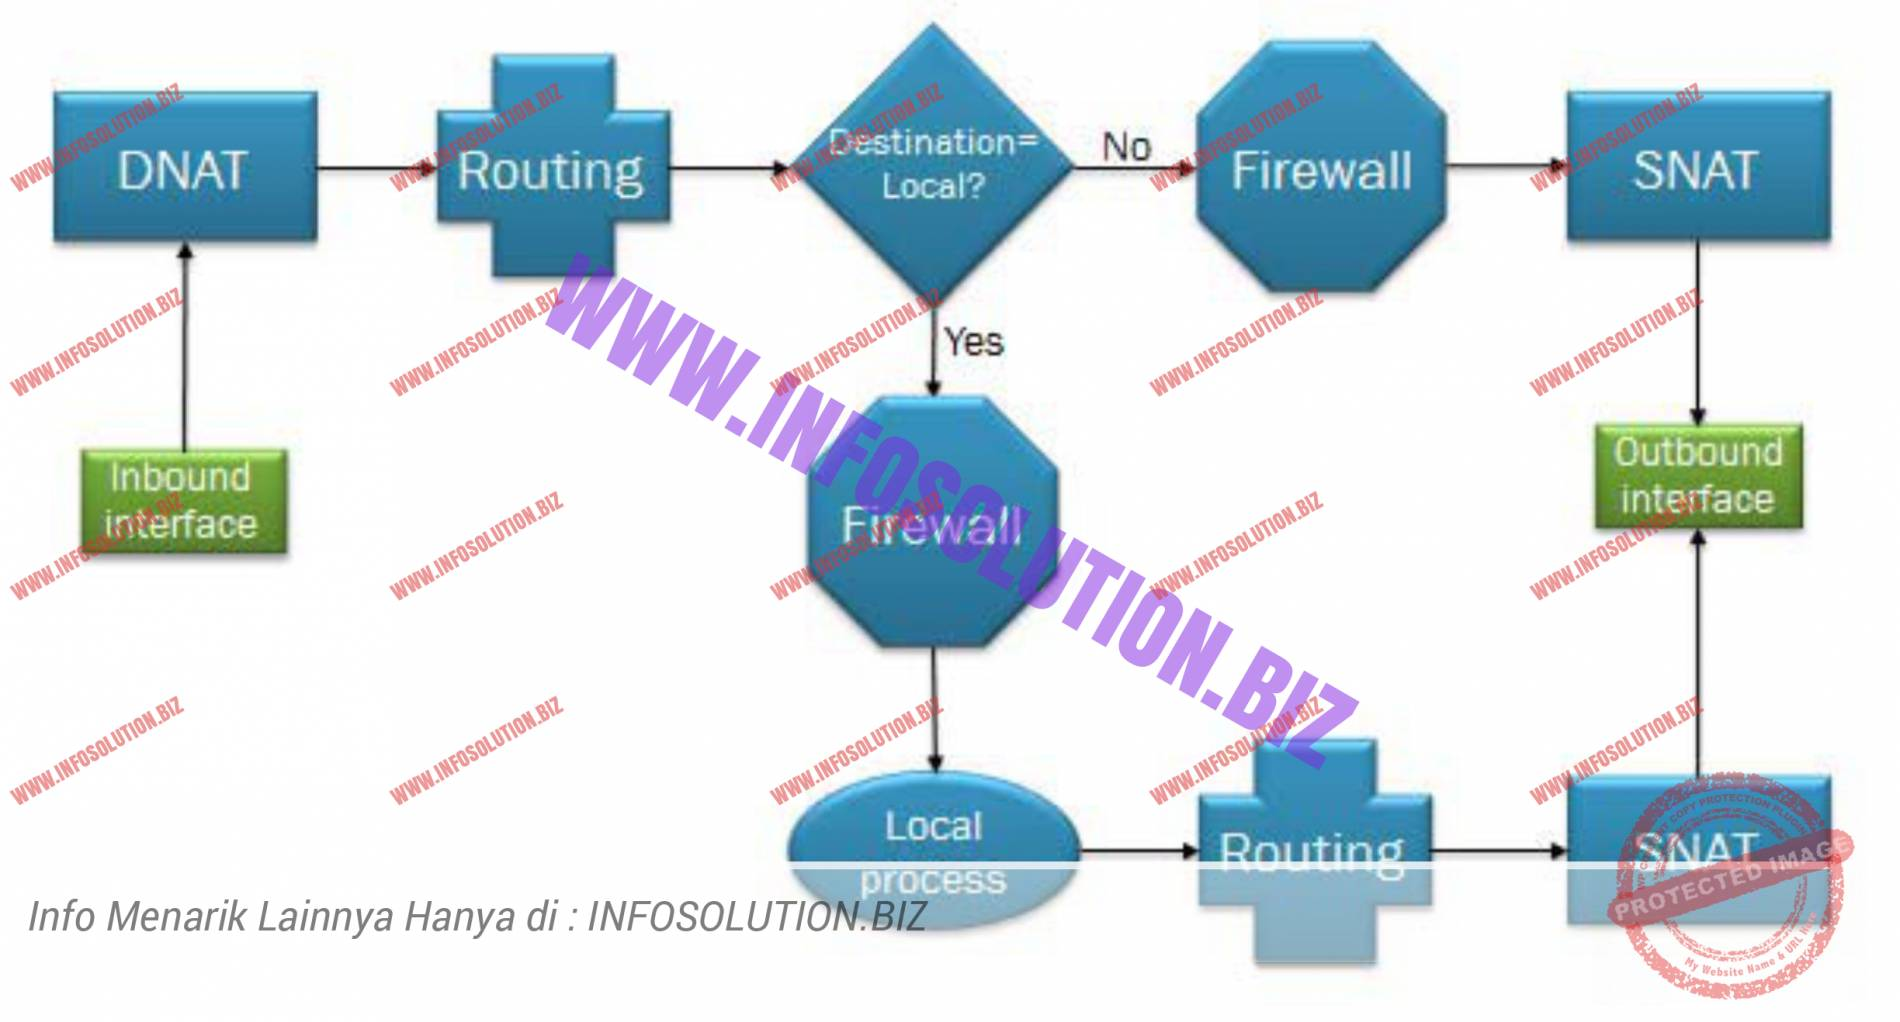 vRouter packet processing